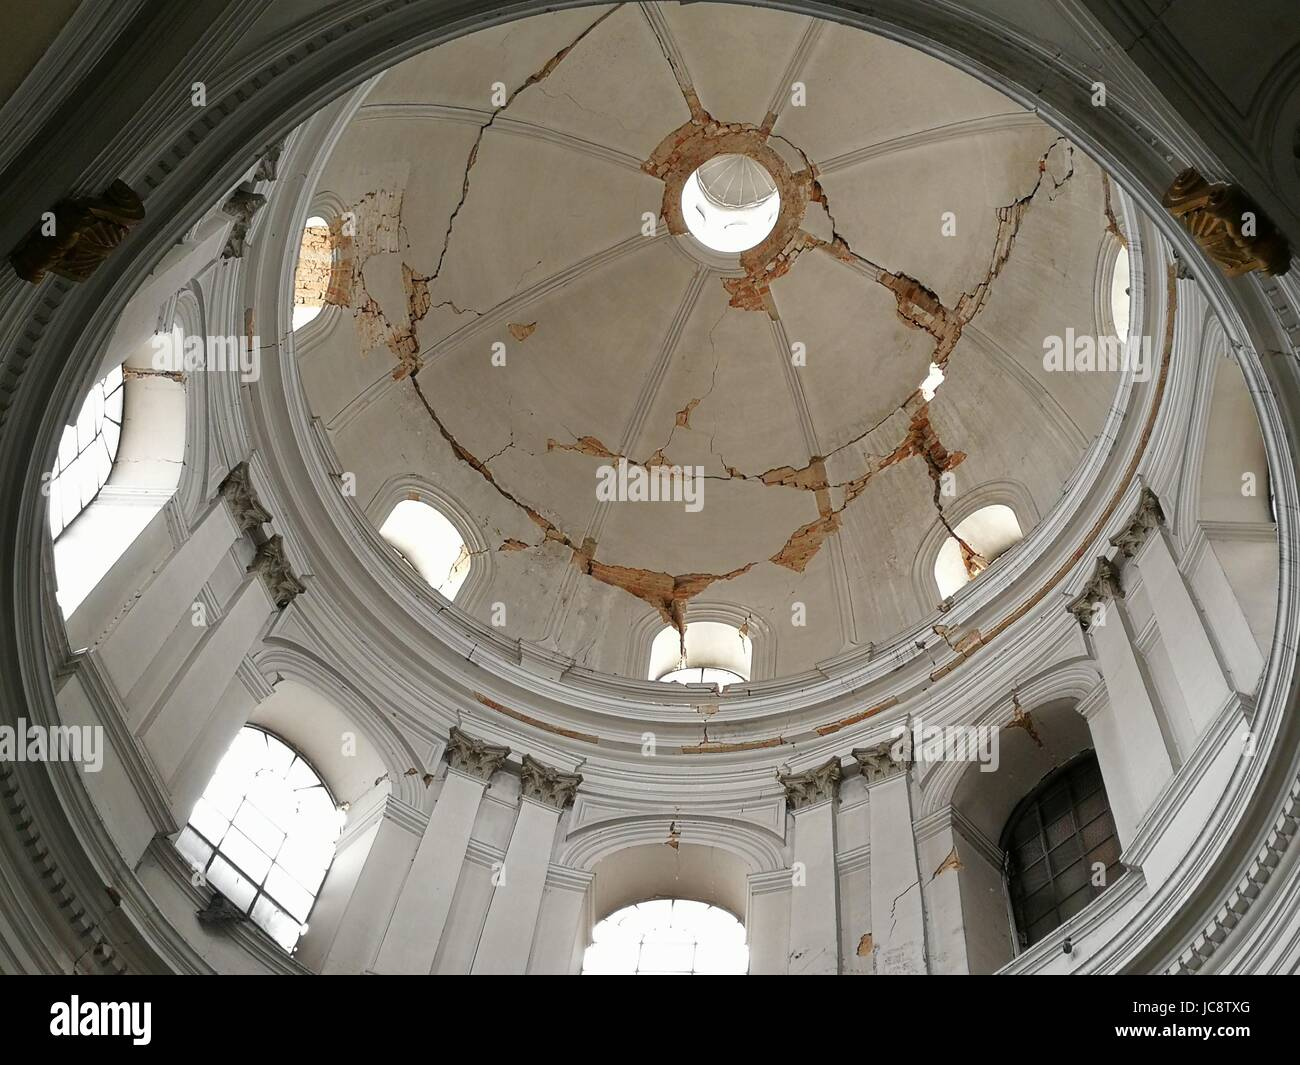 Quezaltenango, Guatemala. 14th June, 2017. The by an earthquake damaged domed roof of the Dome is pictured in Quezaltenango, - Stock Image